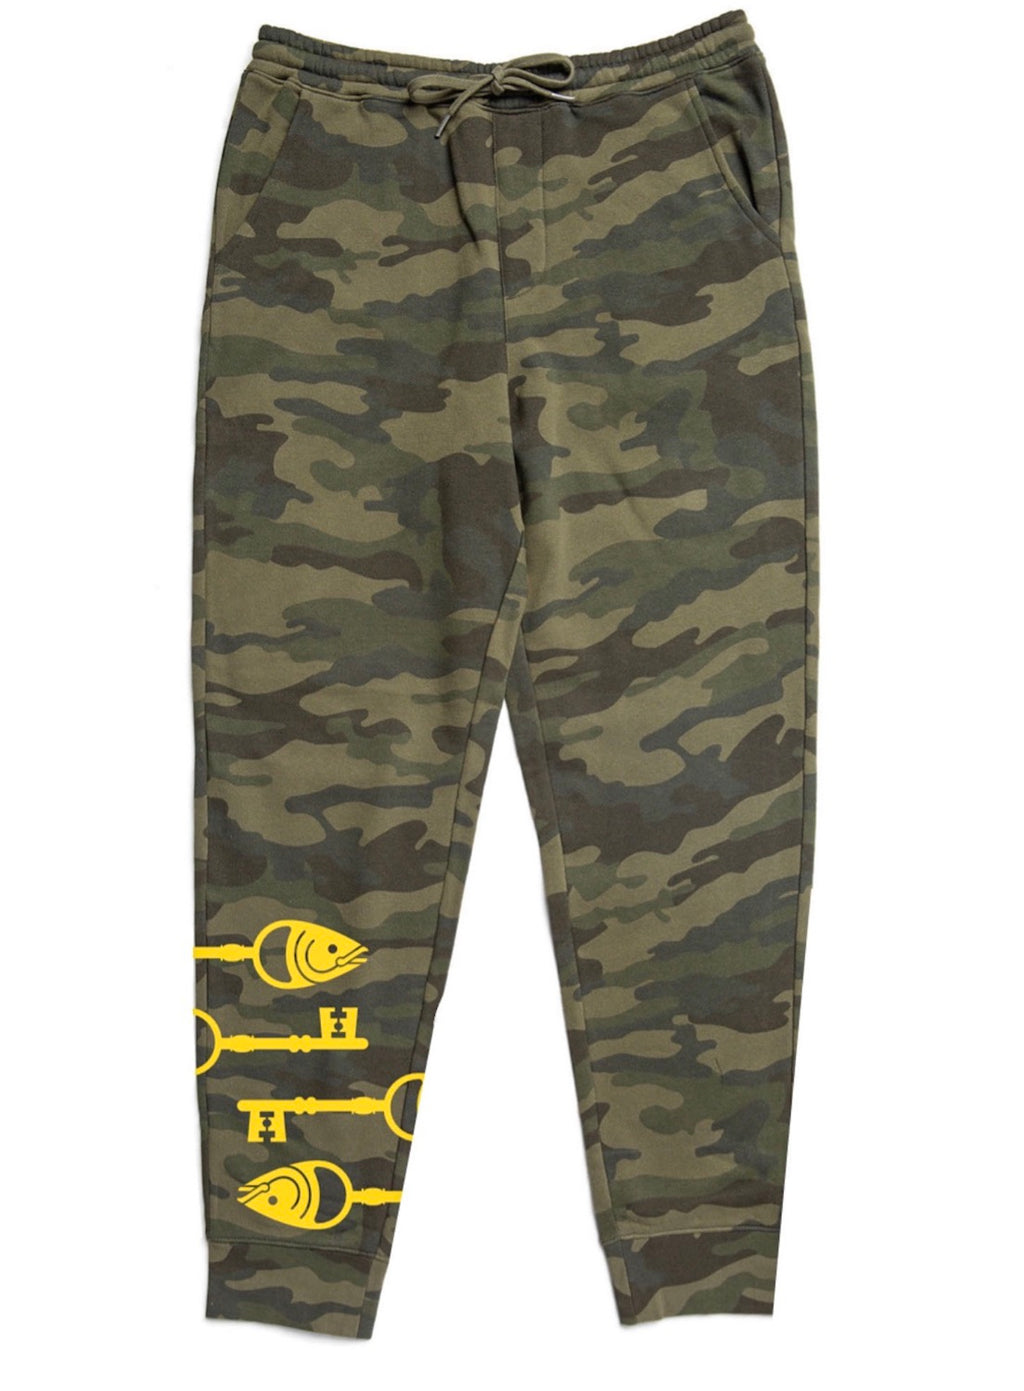 Camo Sweatpant (Keys of Fishscale)